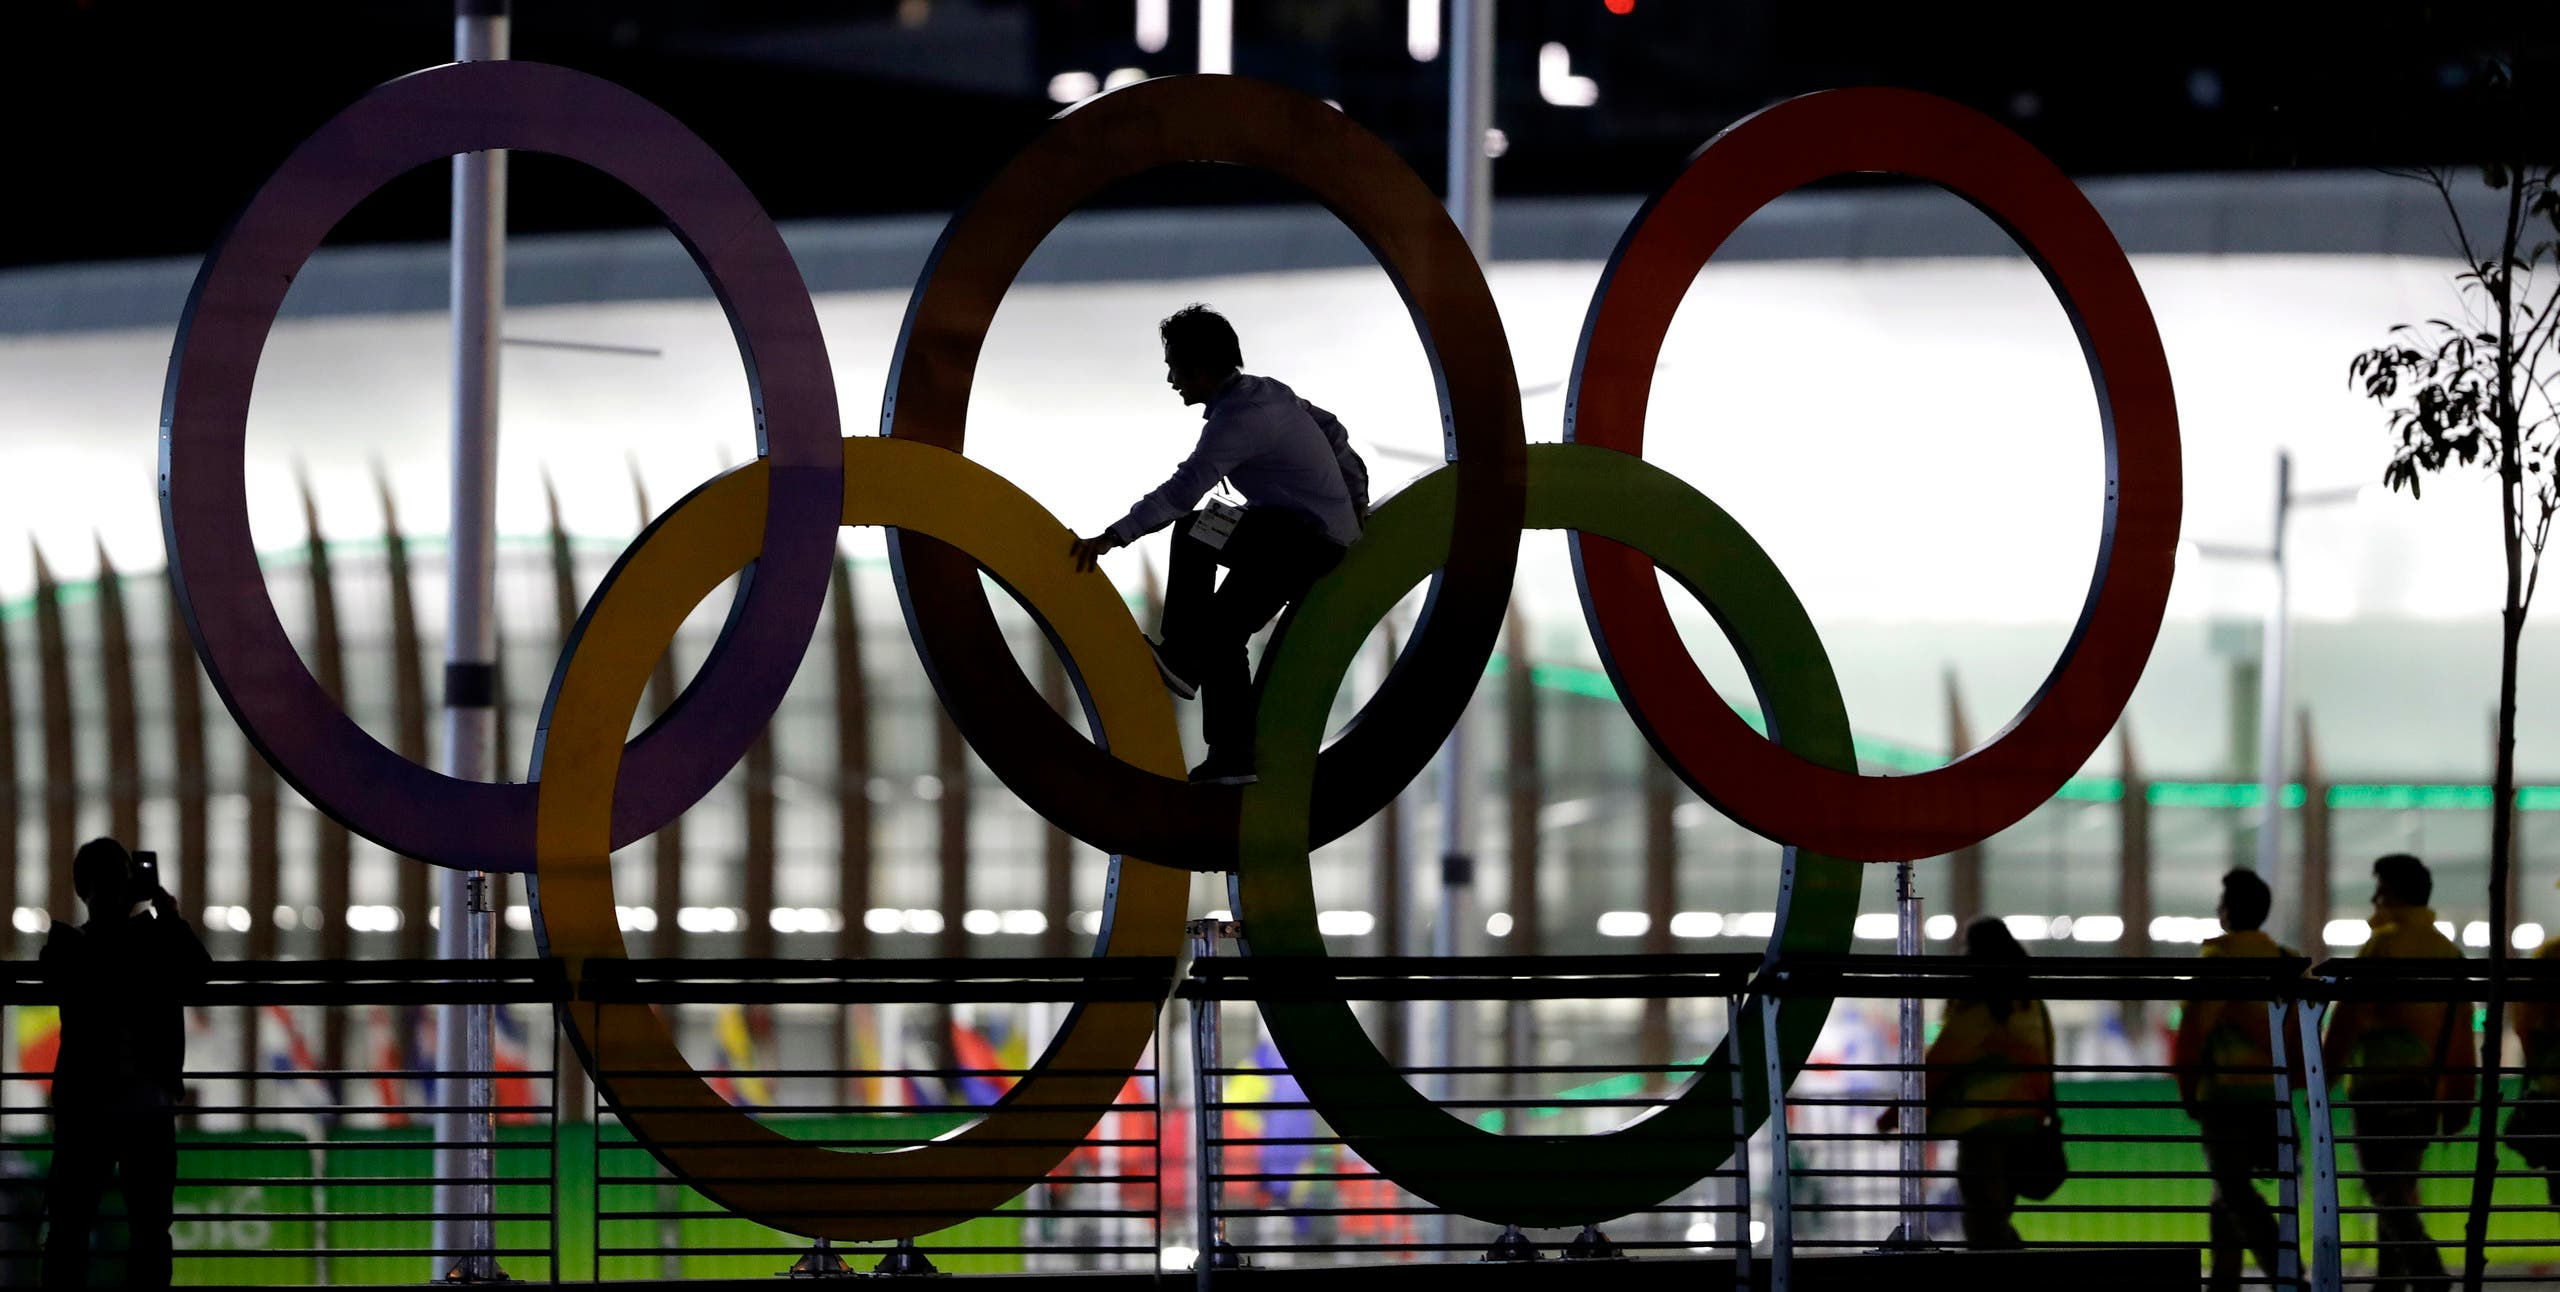 A man climbs on the Olympic rings near the basketball venue in the Olympic park on th eve before the opening ceremony of the 2016 Summer Olympics in Rio de Janeiro, Brazil, Thursday, Aug. 4, 2016. (AP)